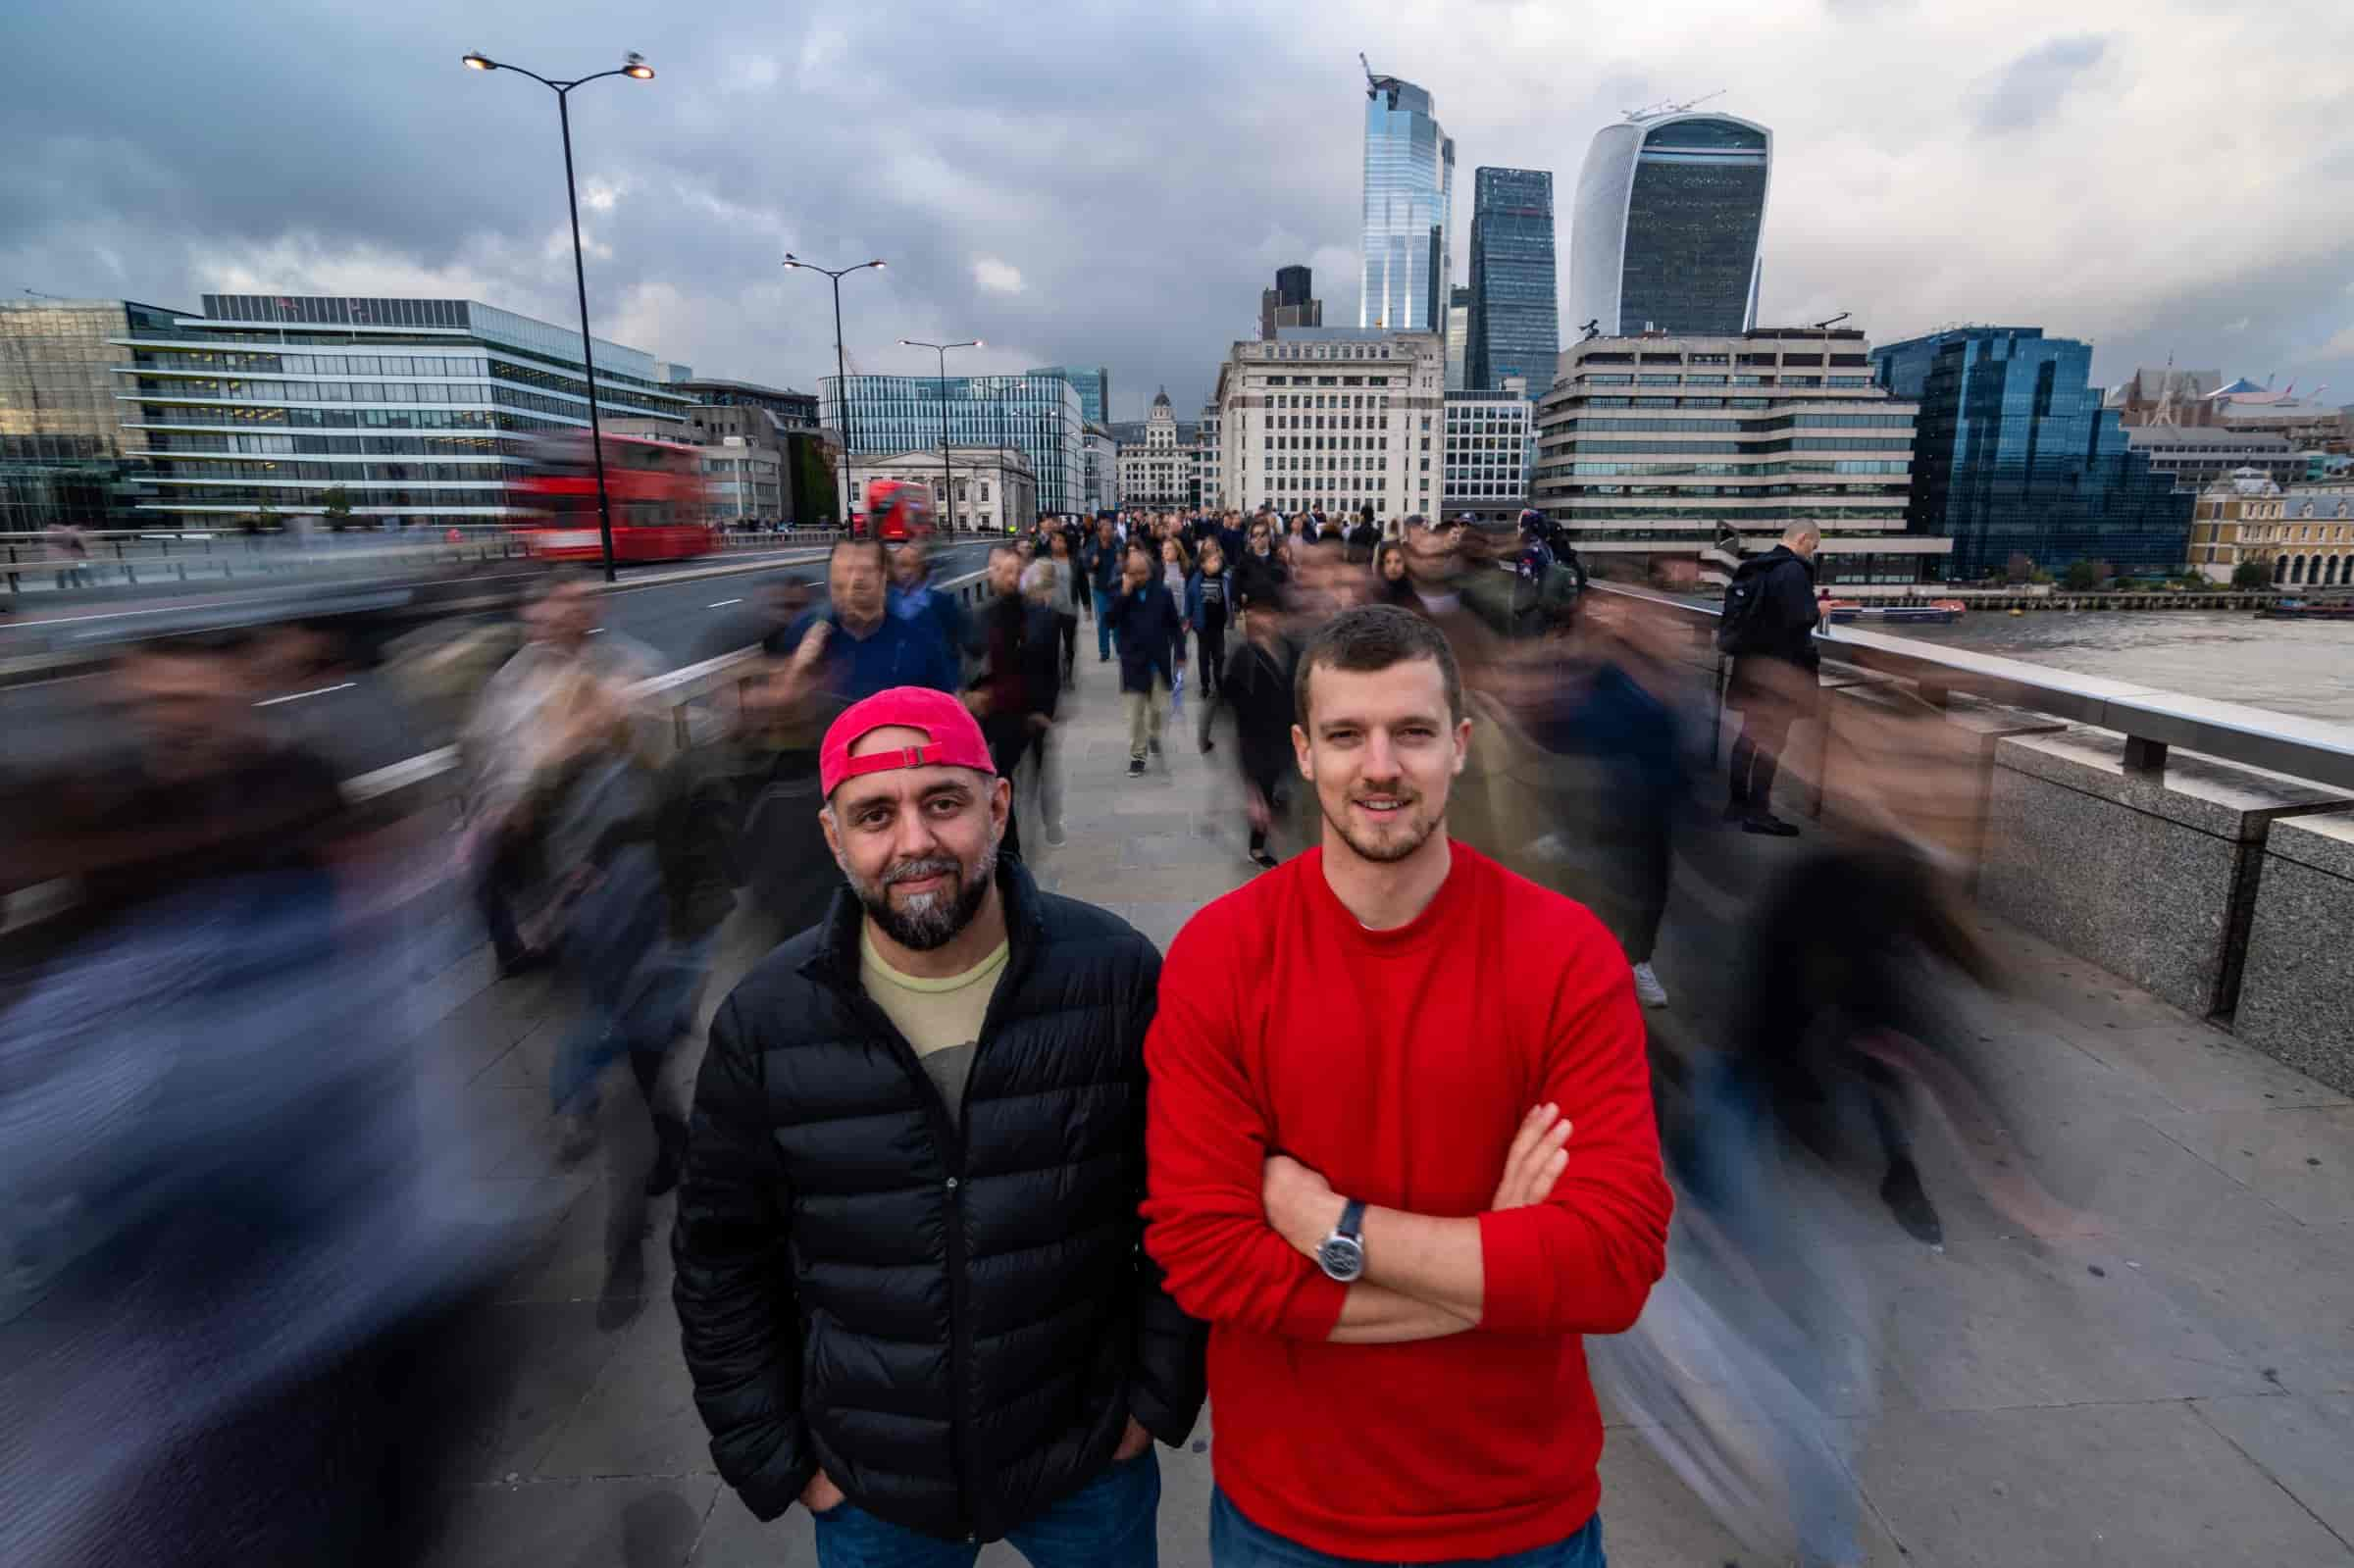 Nayms secures £4.3 million Seed Follow On investment from investors including Spartan Ventures